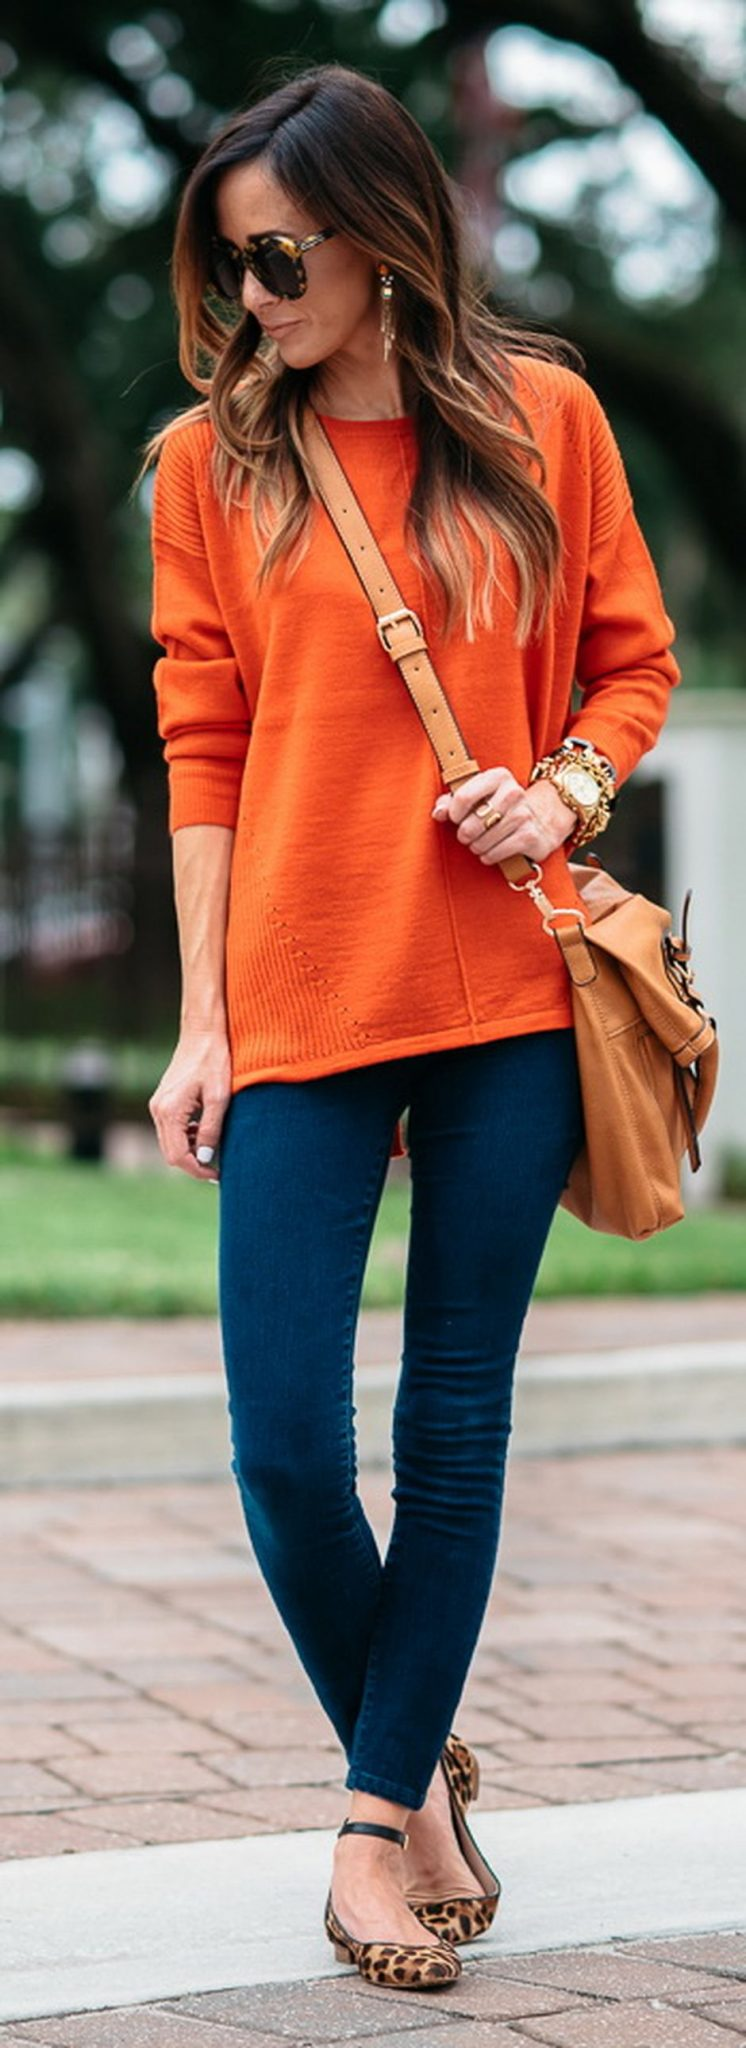 55 Orange Outfit Ideas That Make You Look Young and Fresh 20